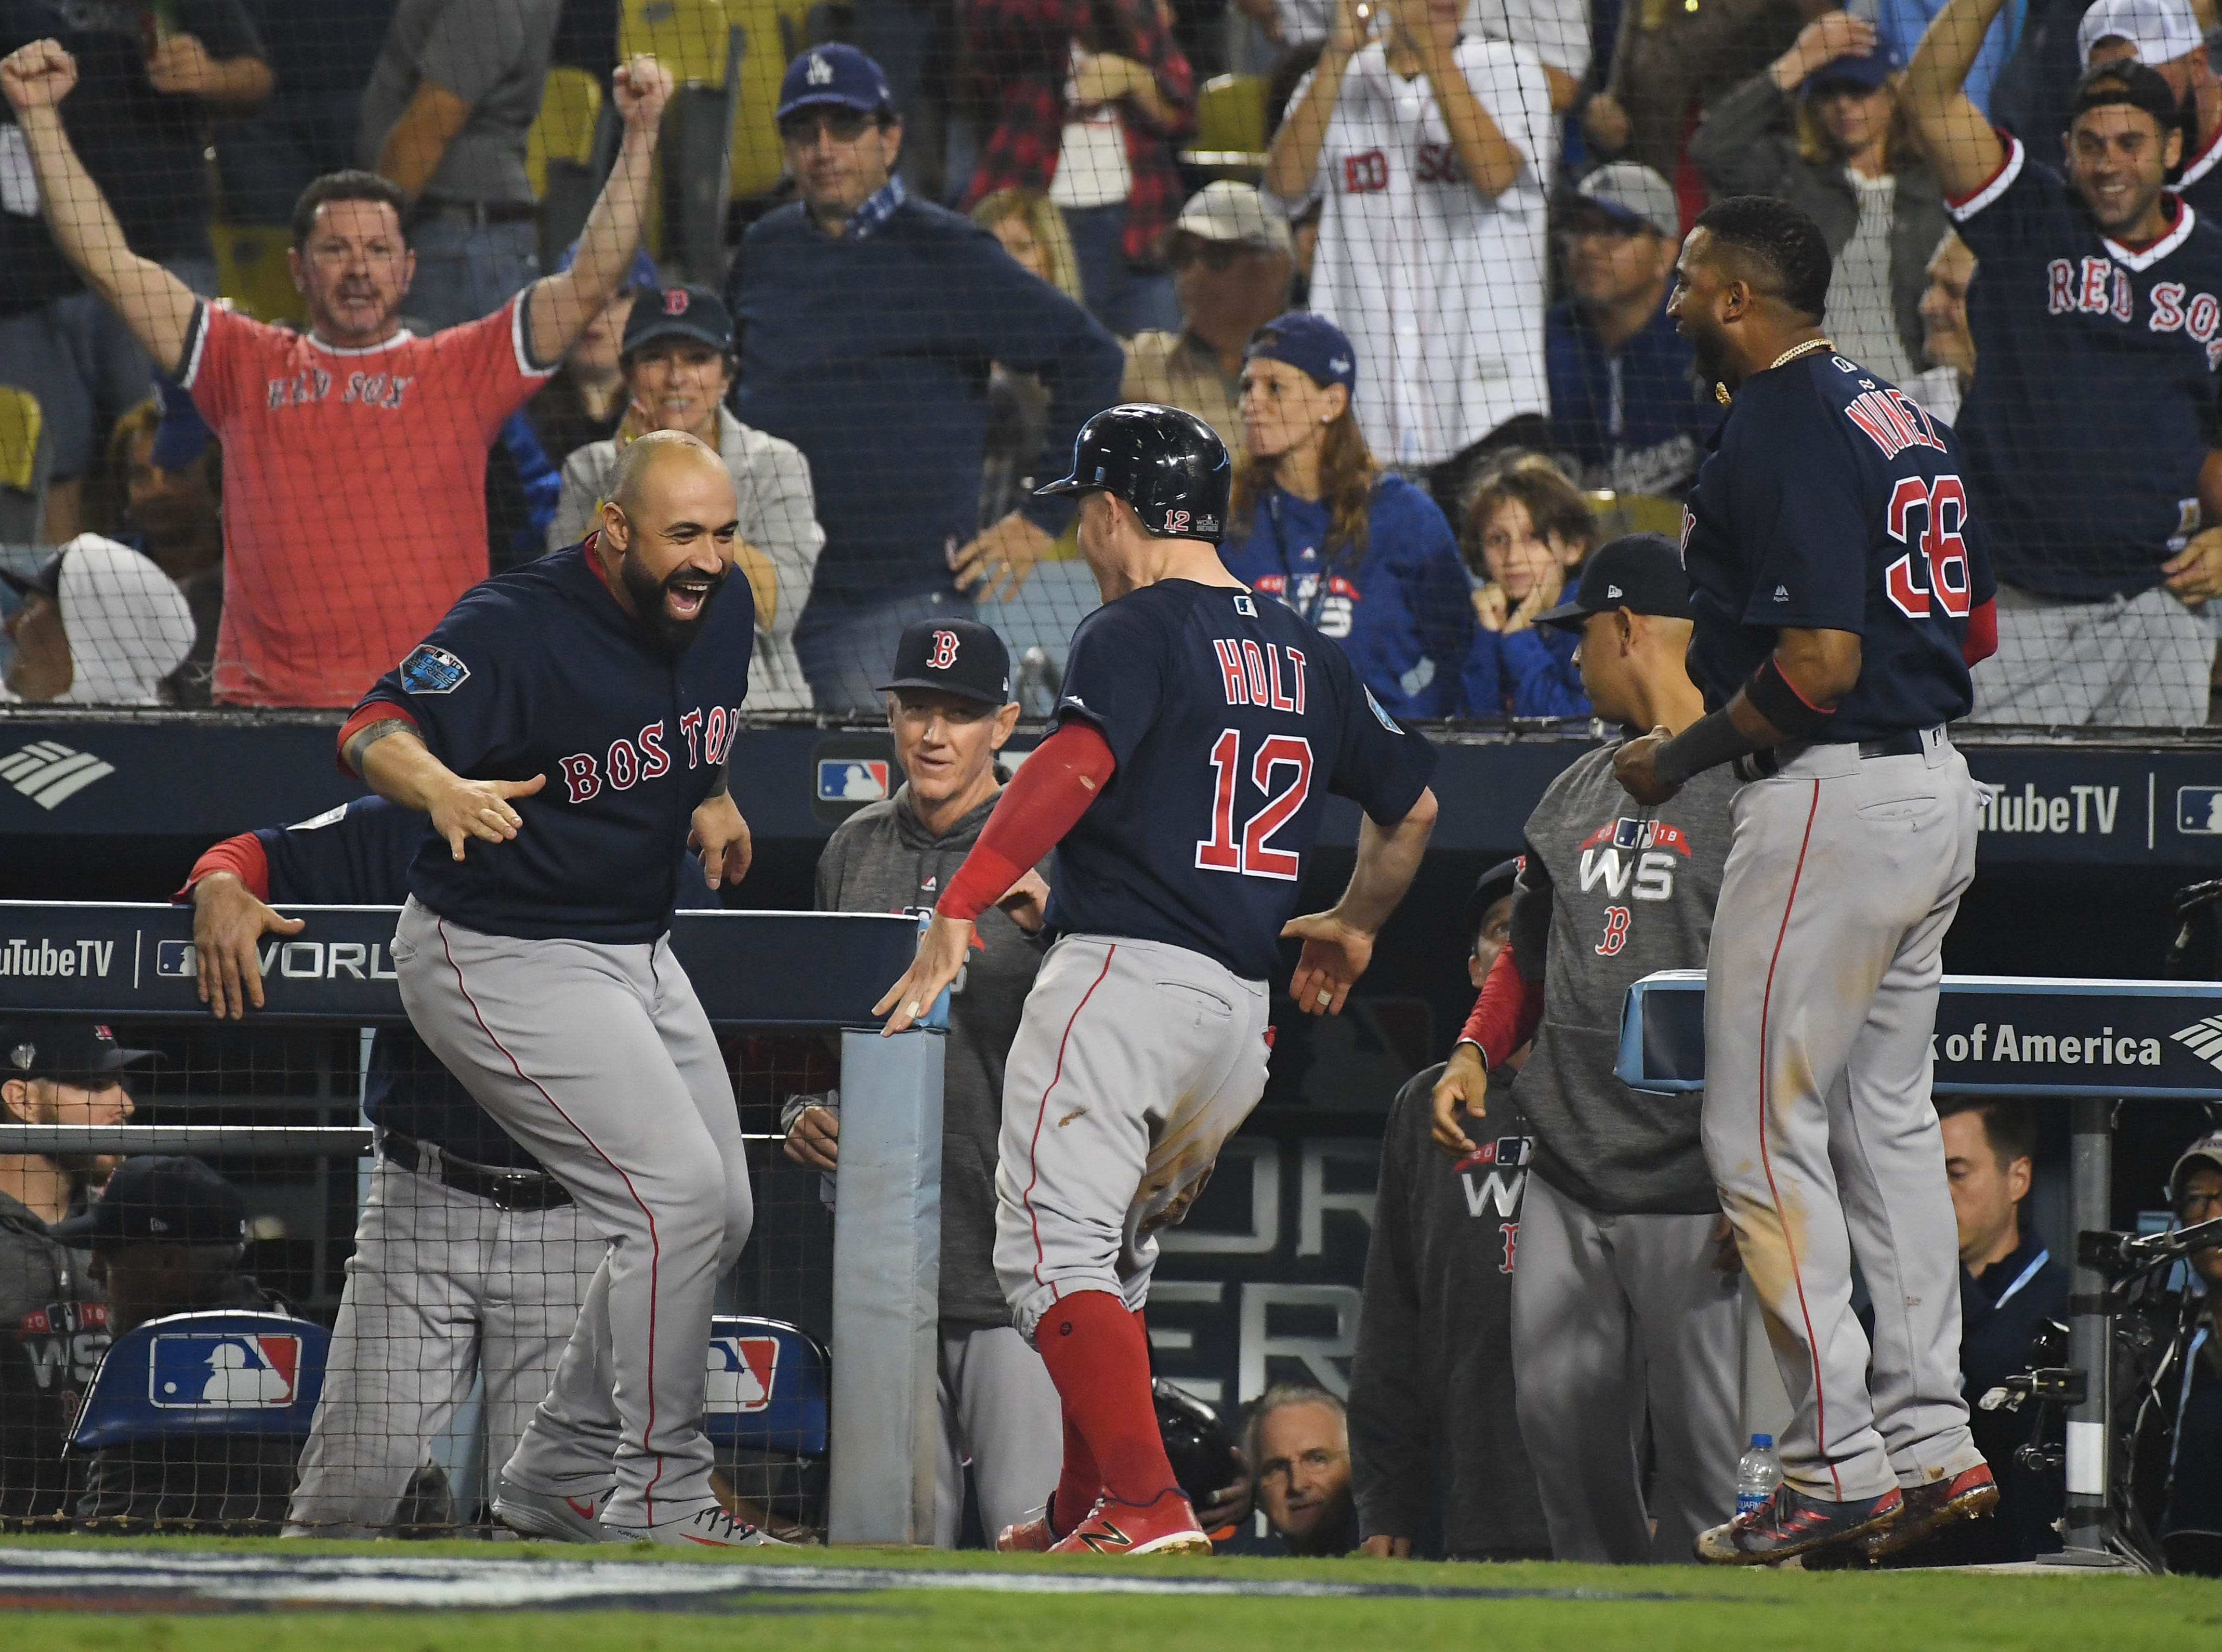 Game 4 at Dodger Stadium: Red Sox players celebrate after Brock Holt scored in the top of the ninth.